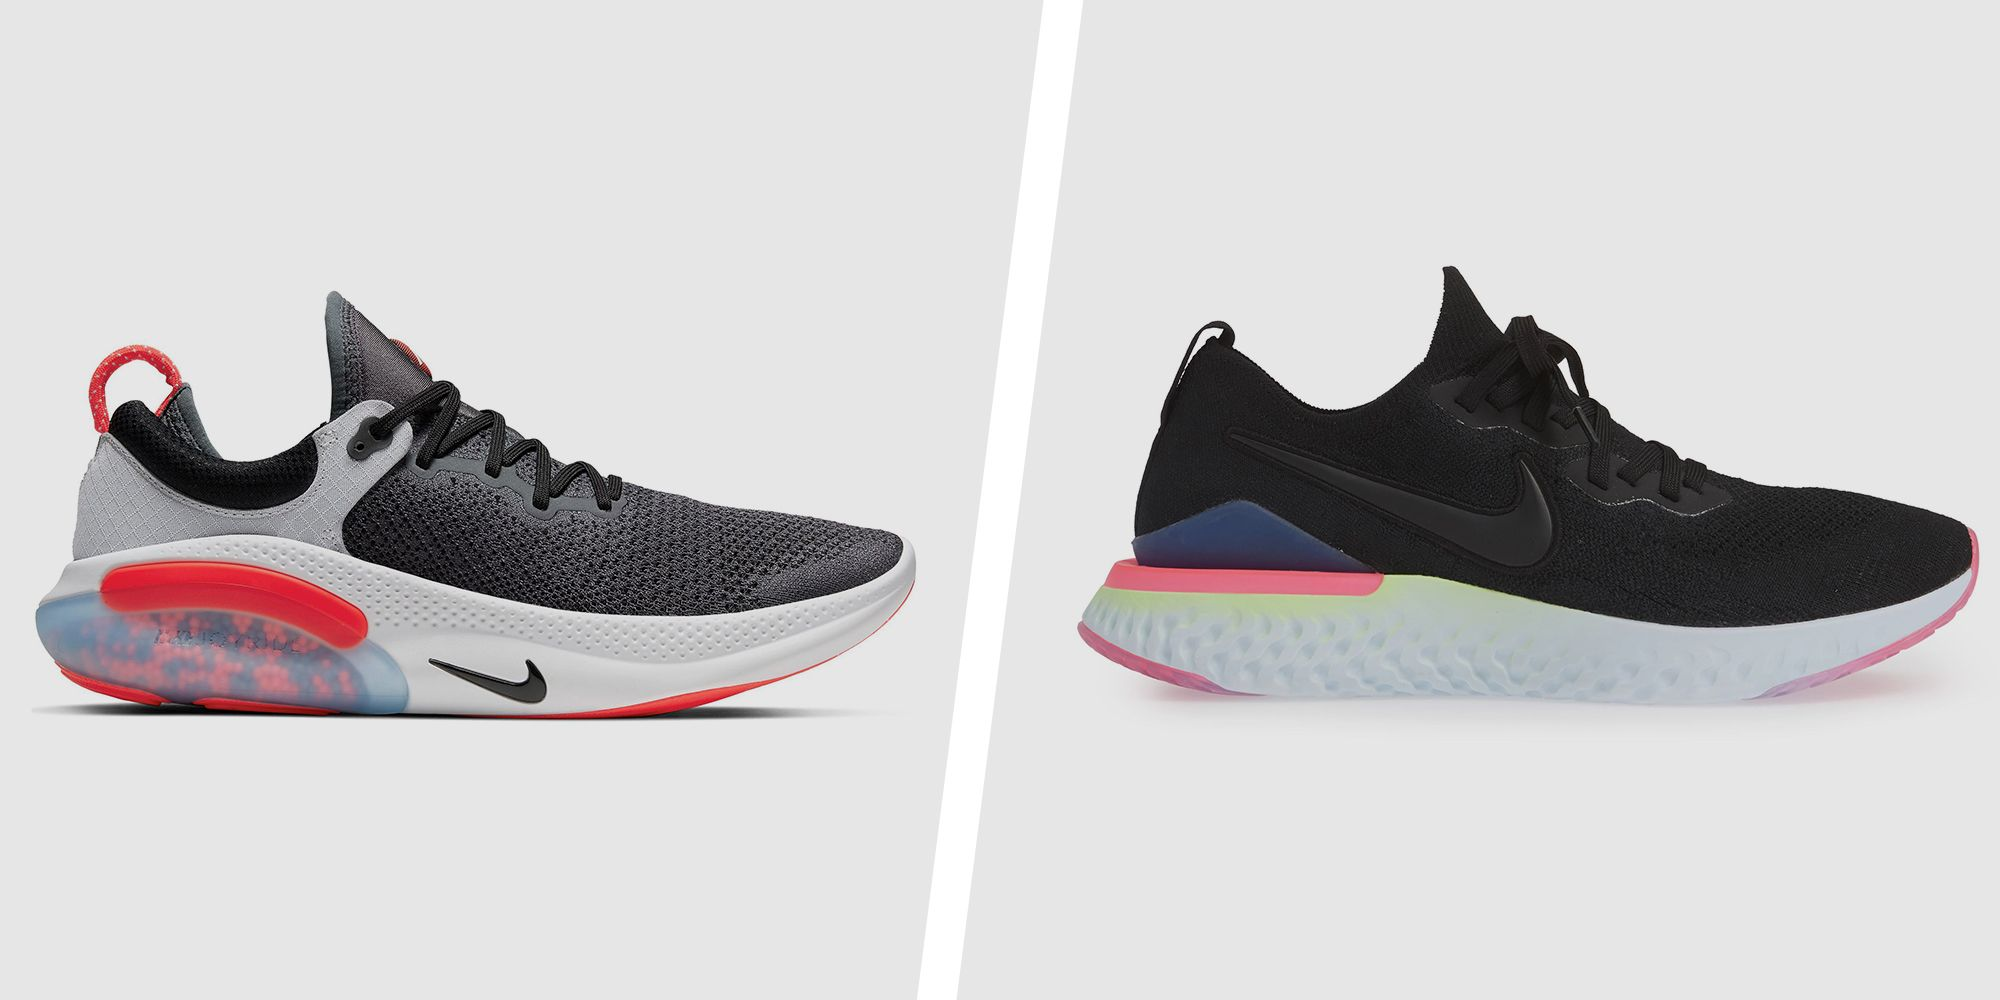 The 8 Best Nike Sneakers to Score on Sale at Nordstrom Right Now